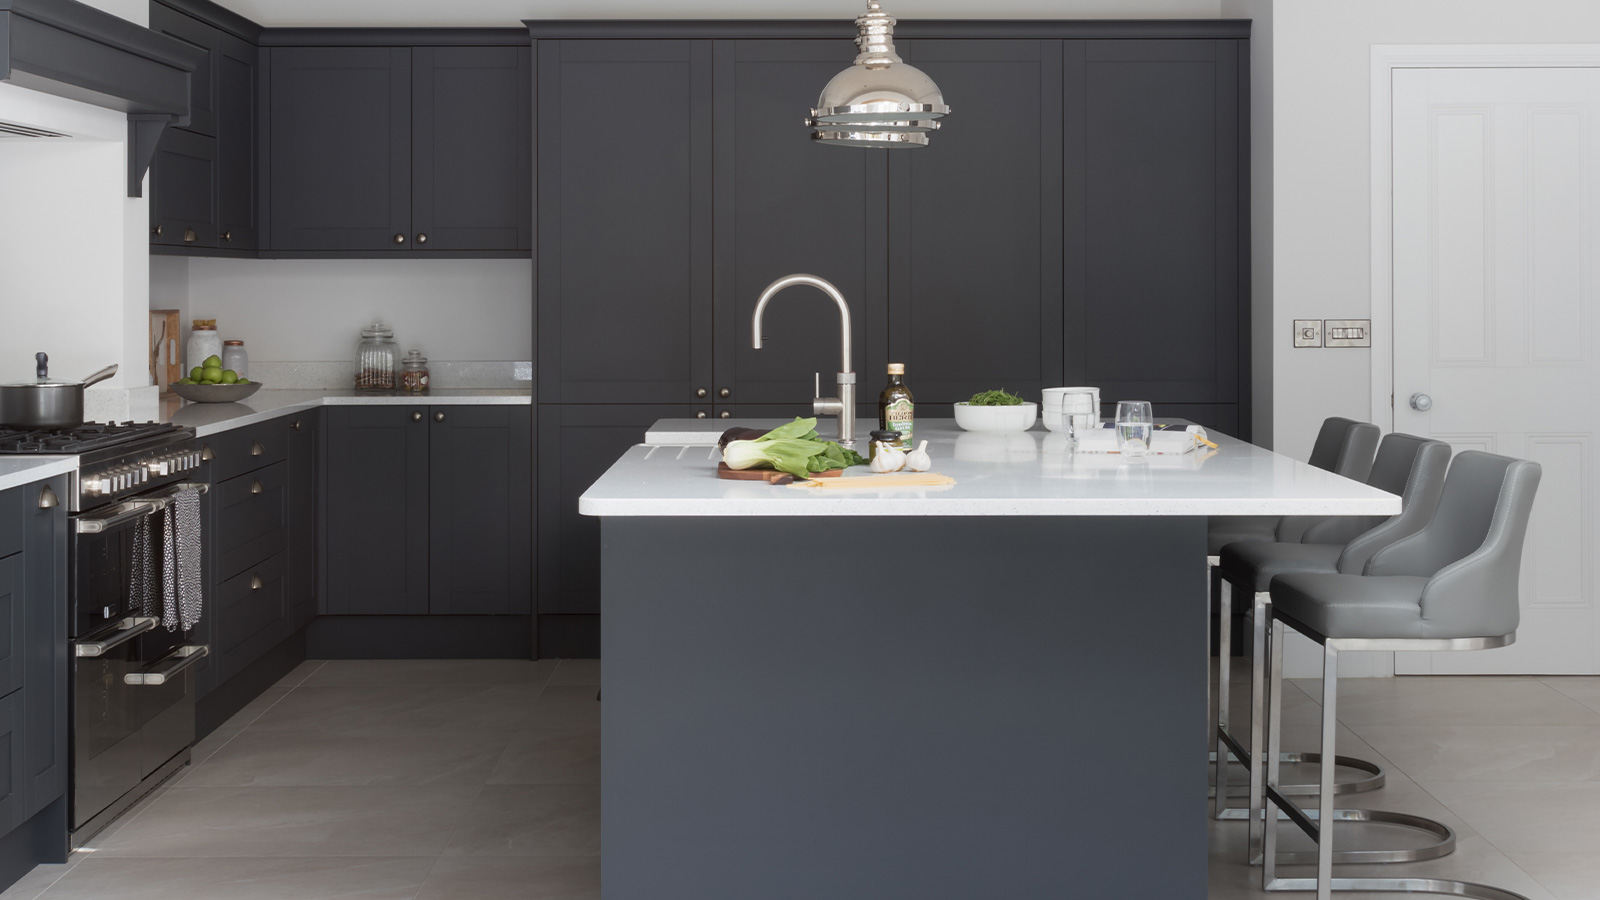 A luxury classic kitchen with grey shaker cabinets